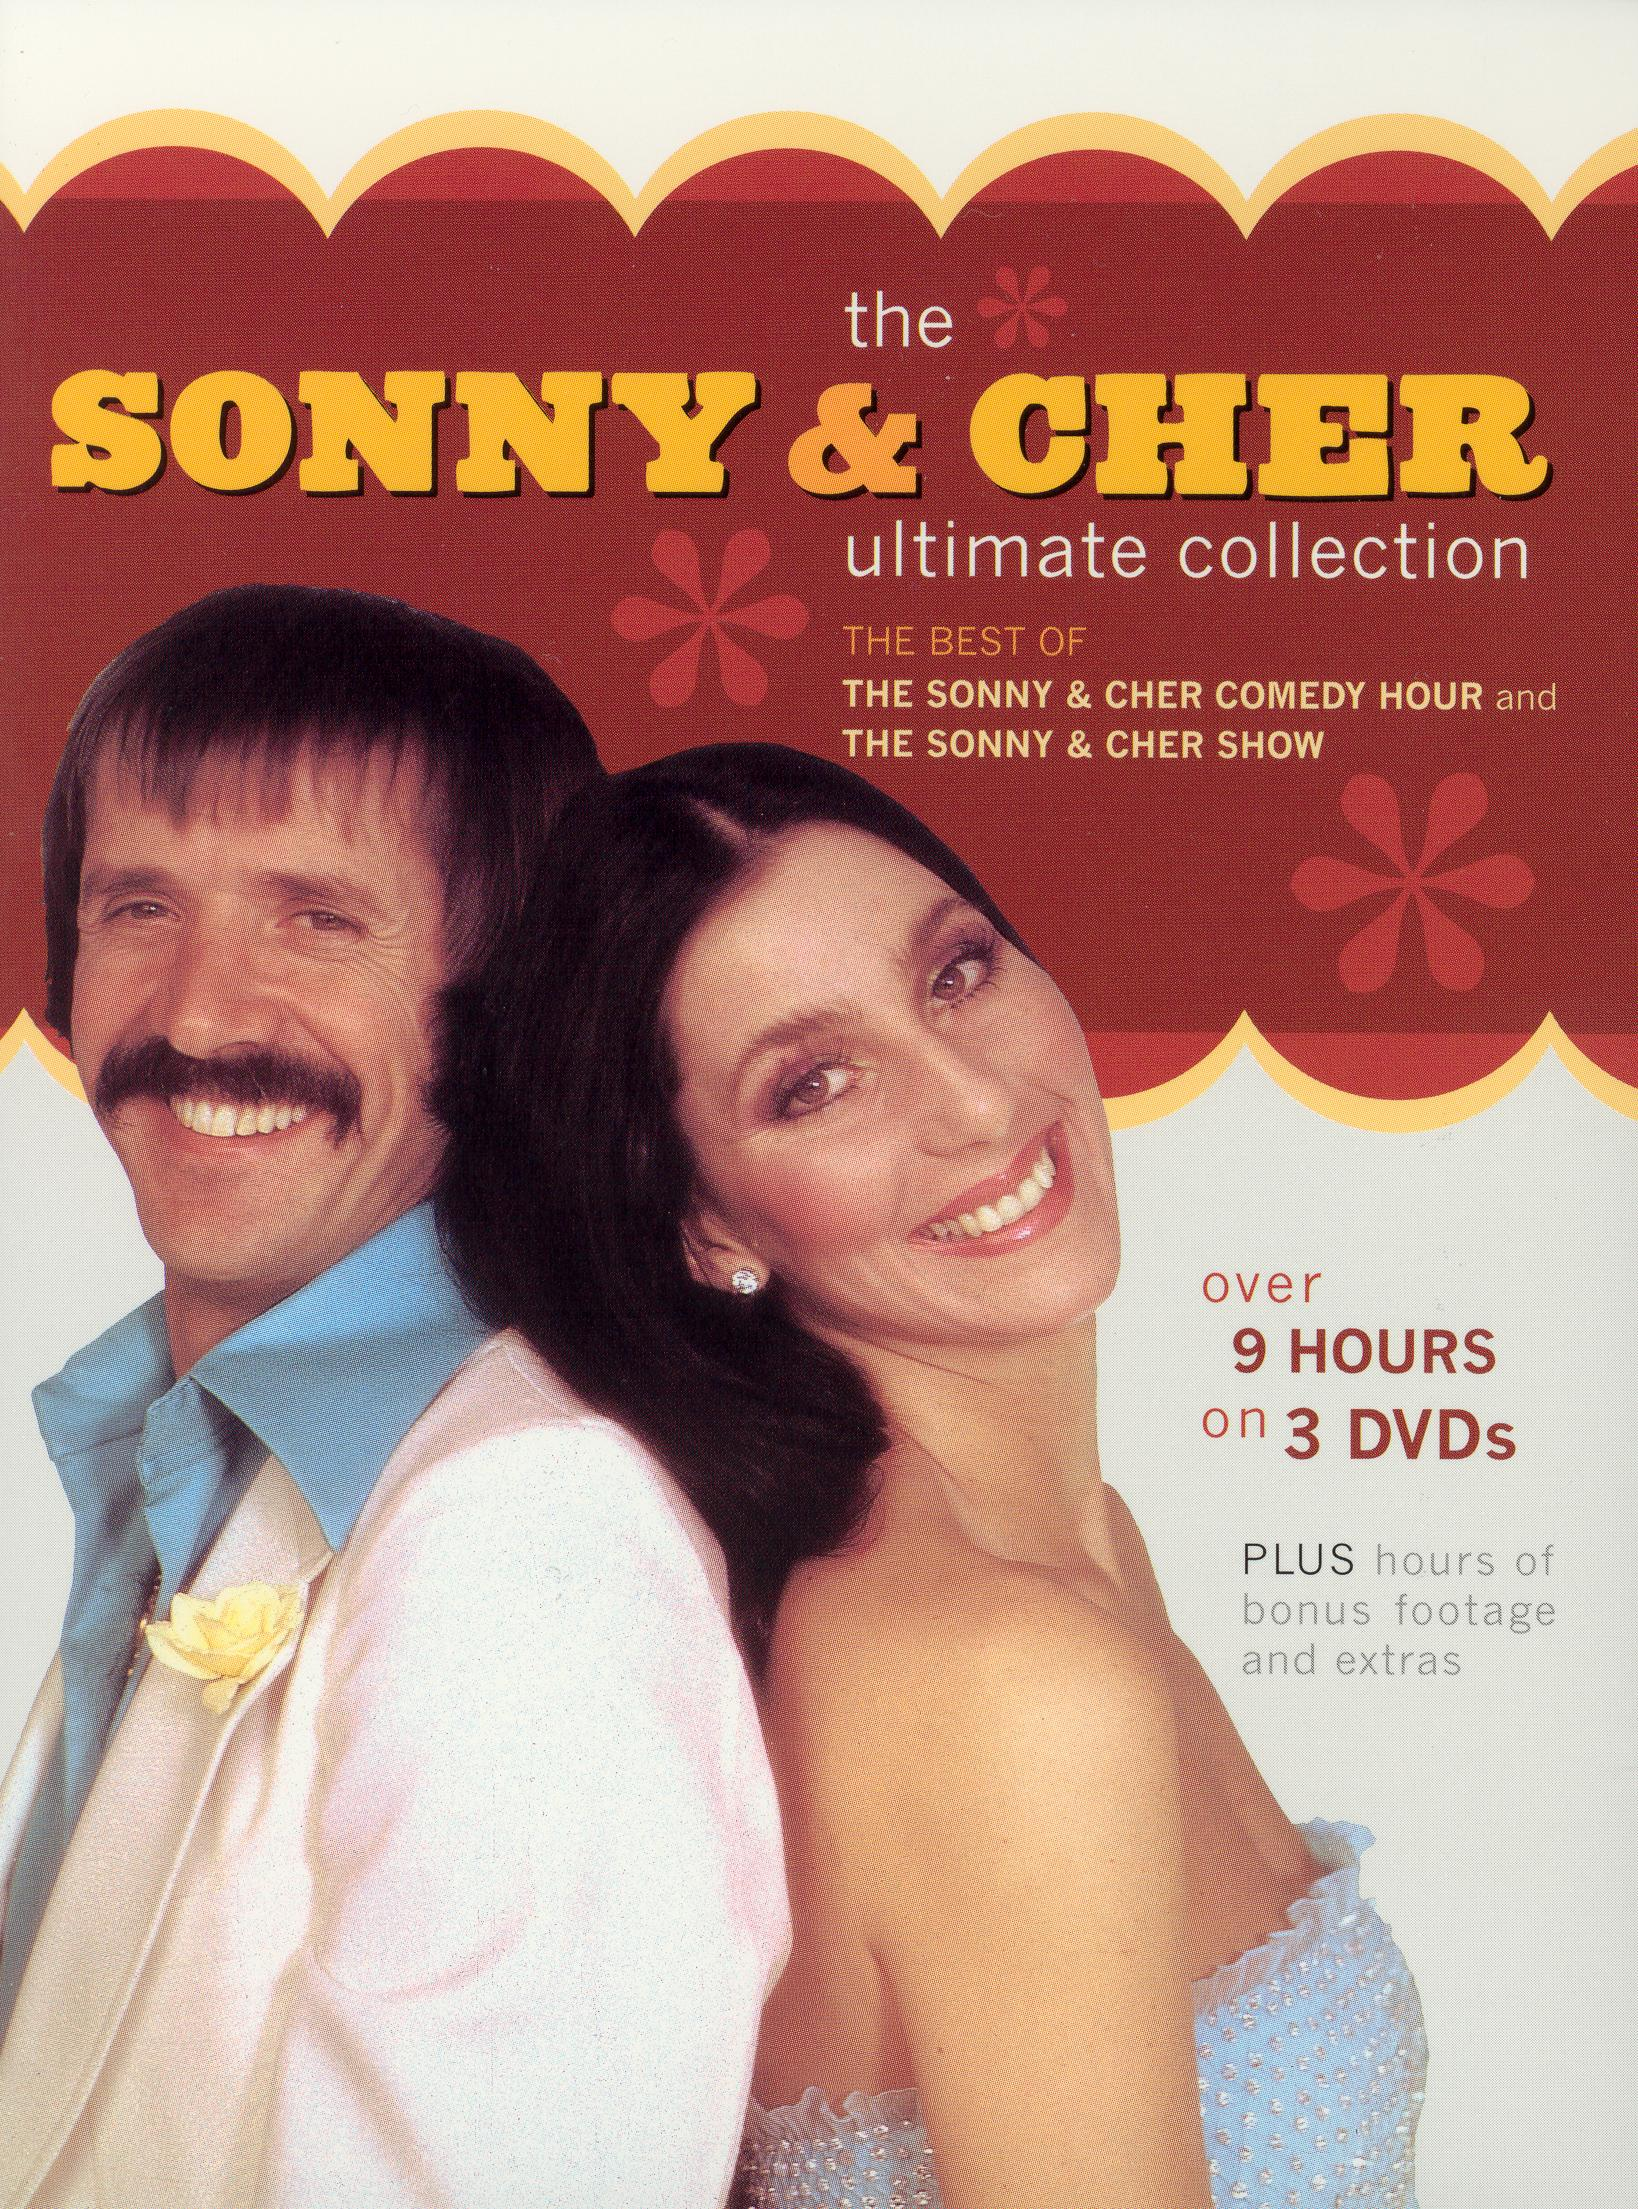 The Sonny and Cher Ultimate Collection